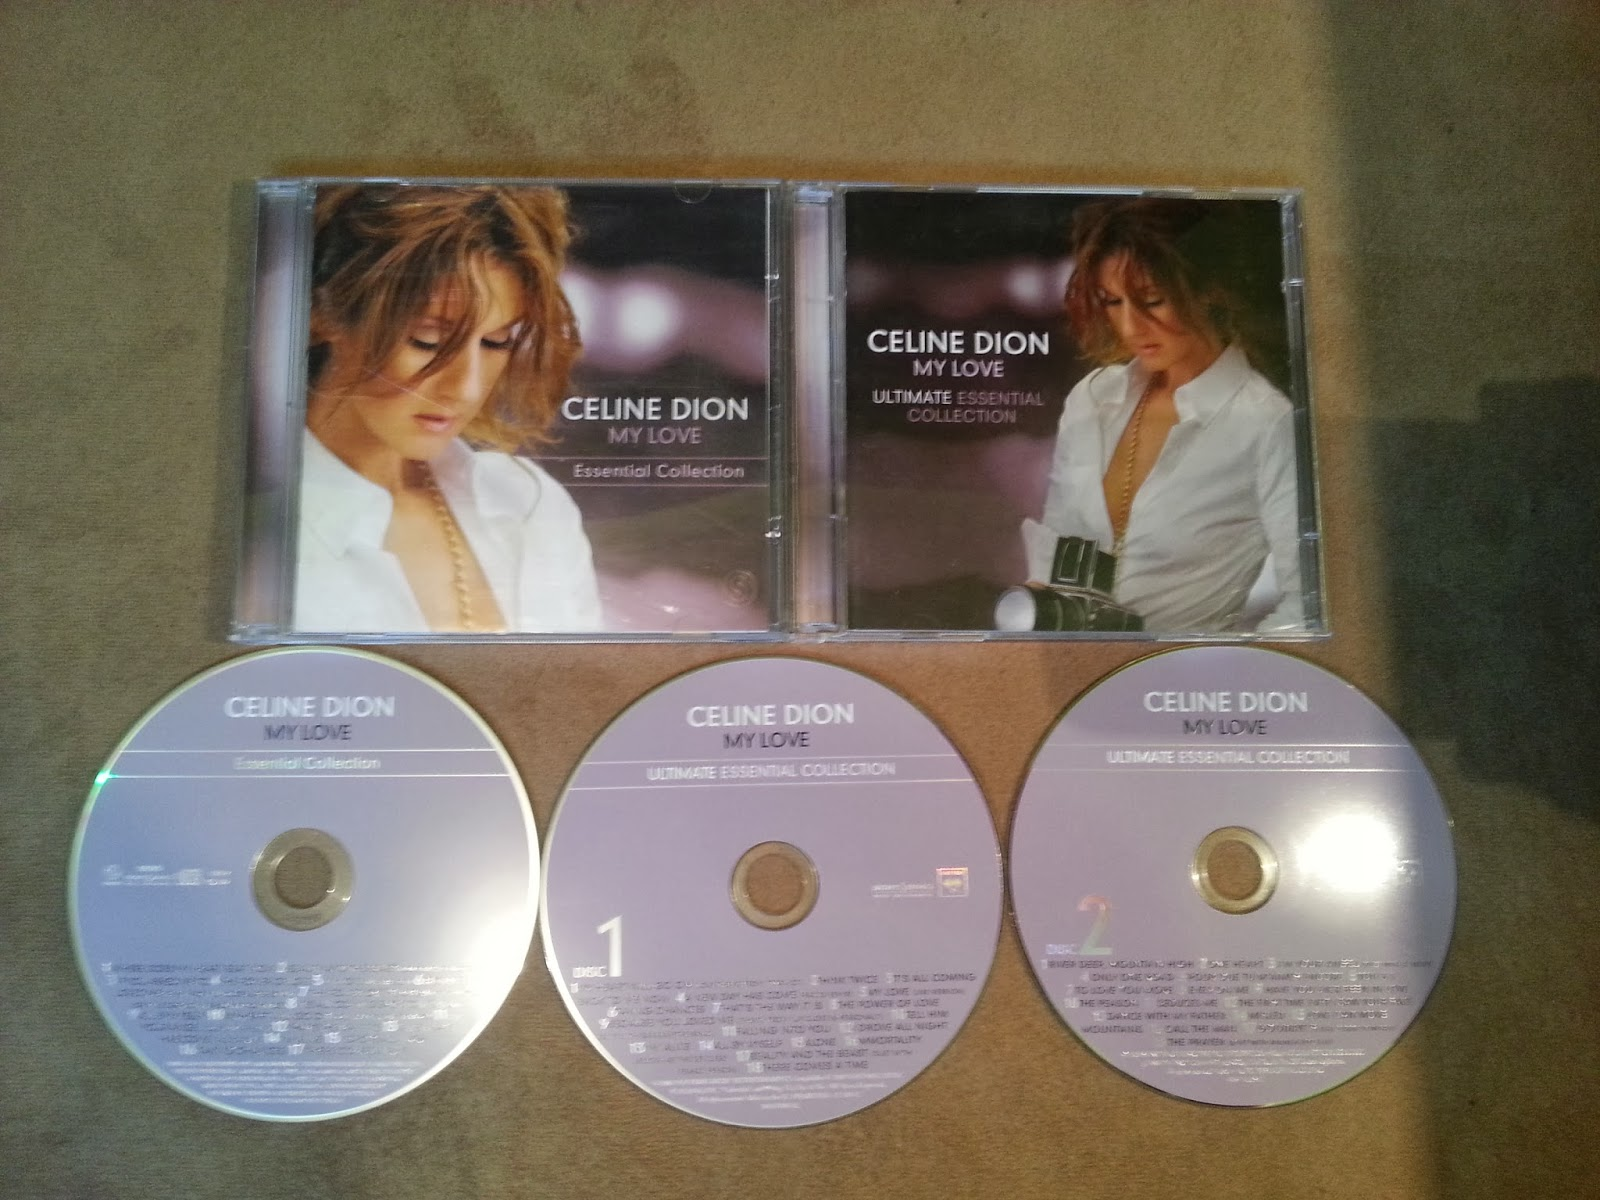 CELINE COLLECTION BAIXAR ULTIMATE ESSENTIAL CD MY DION LOVE